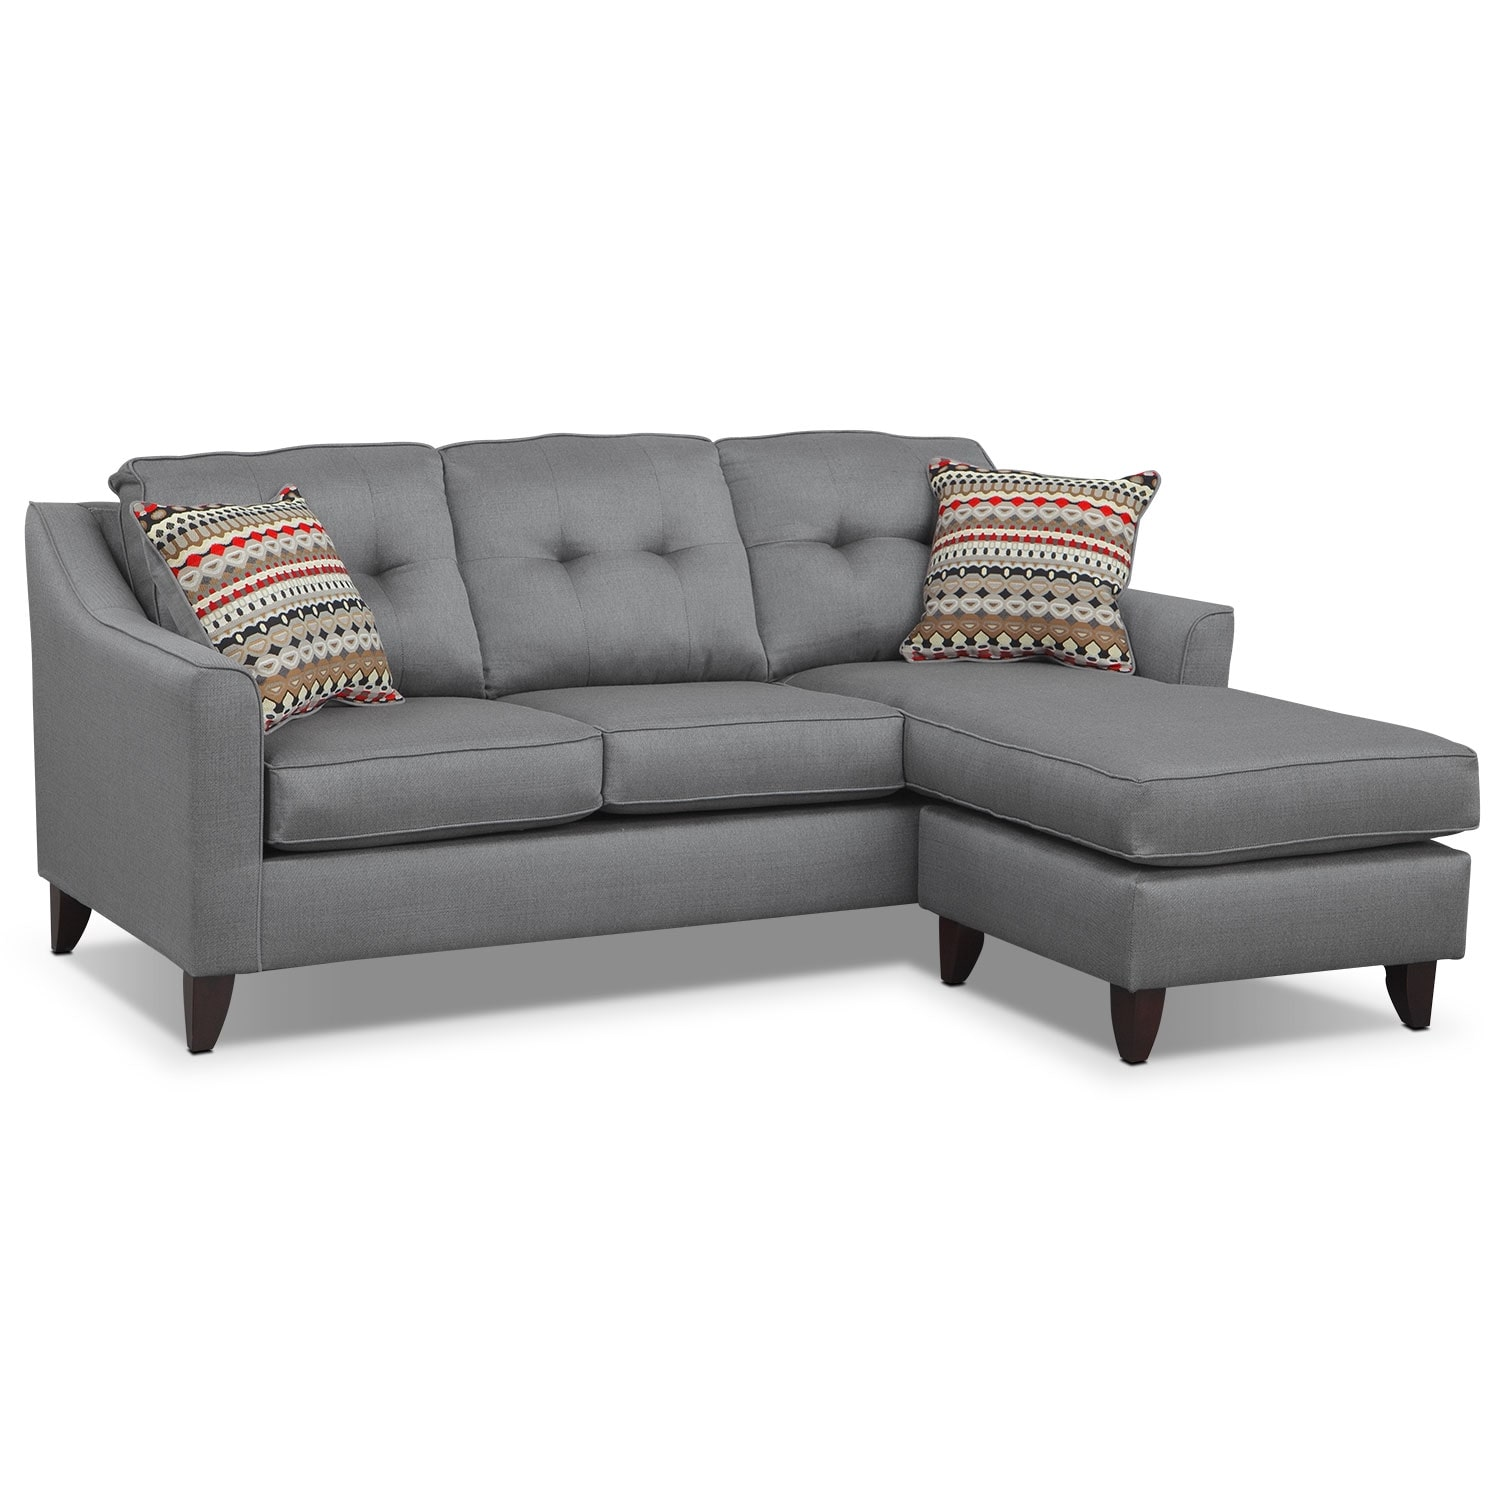 marco cream chaise sofa by factory outlet dorado corner fabric grey egan ii cement w reversible living